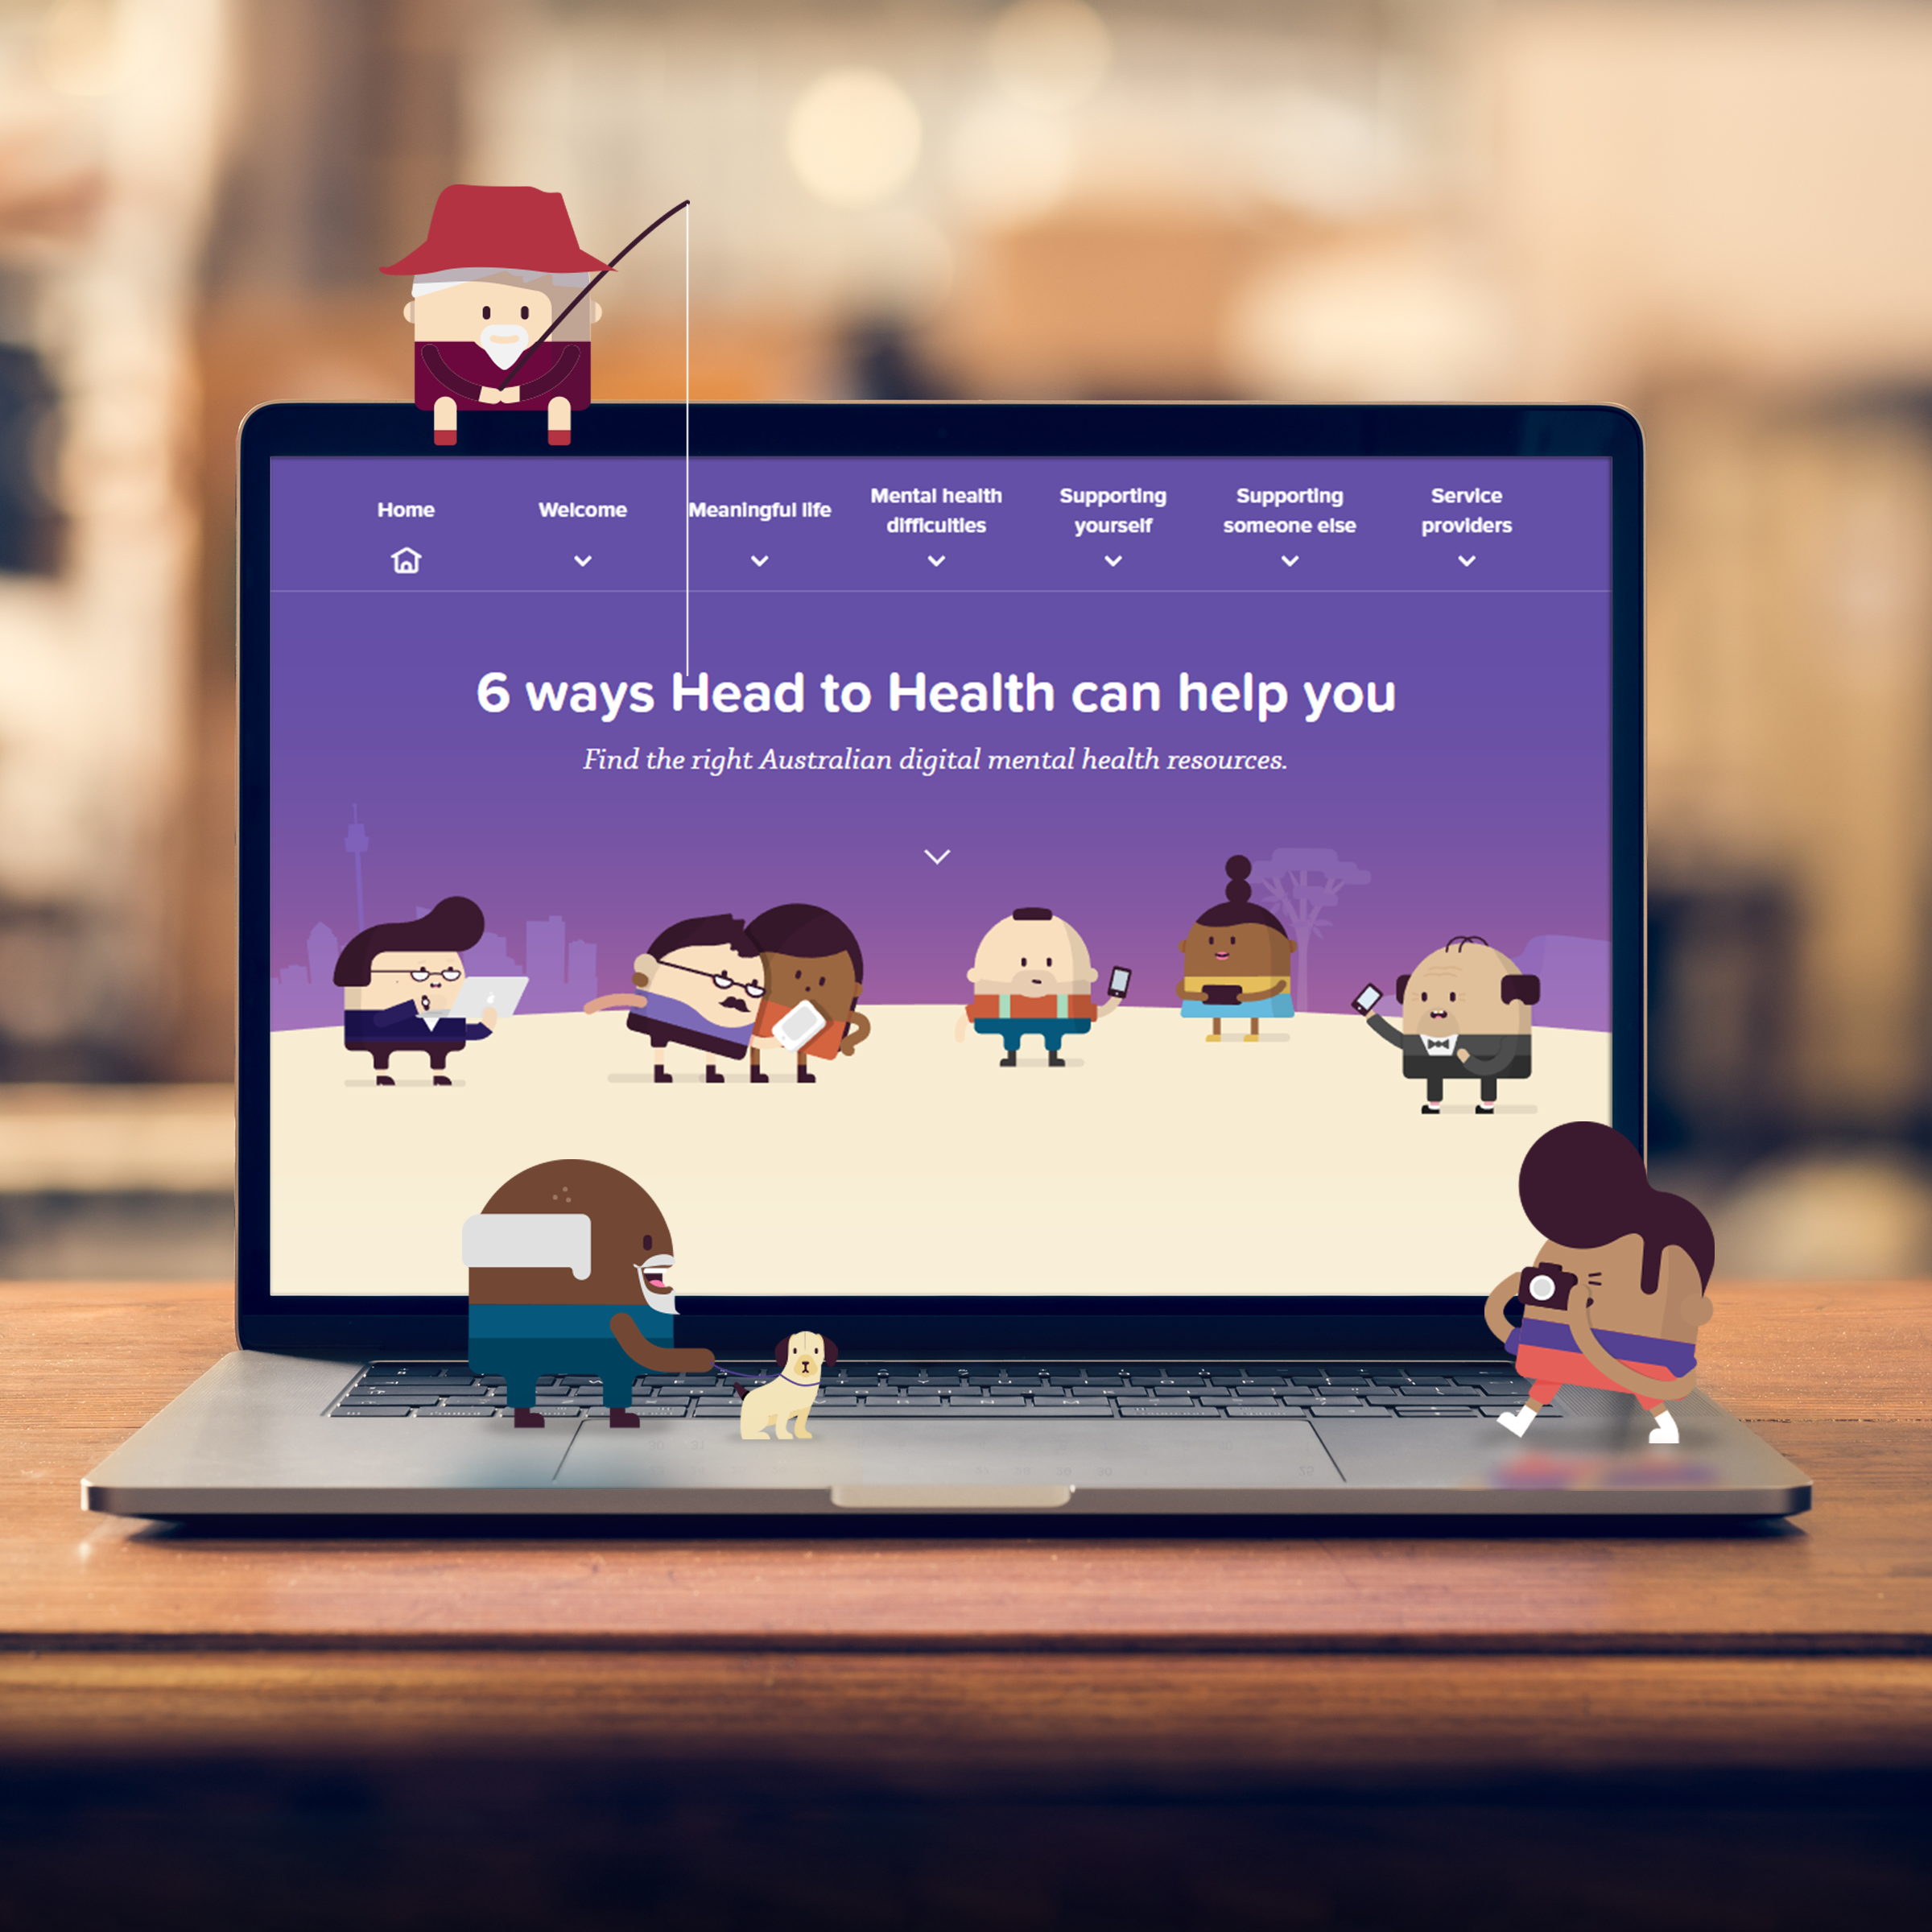 Australia's new digital mental health gateway, Head to Health, is now live